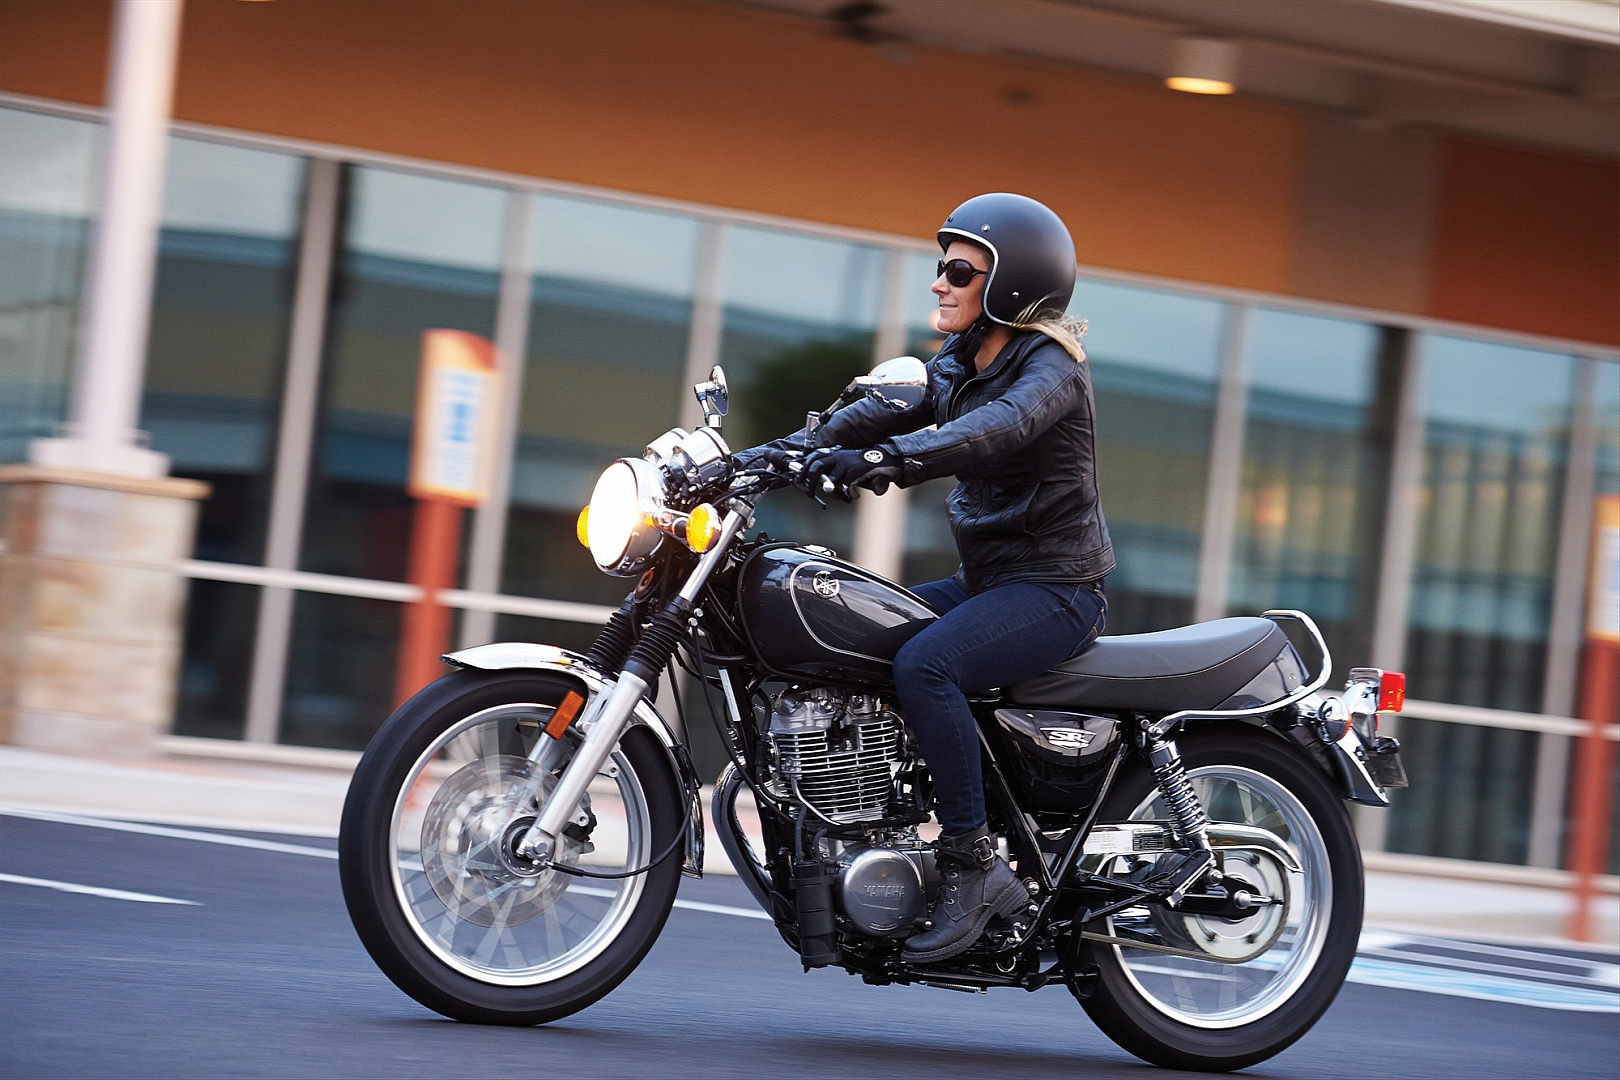 Best Kawasaki Motorcycle For Beginners